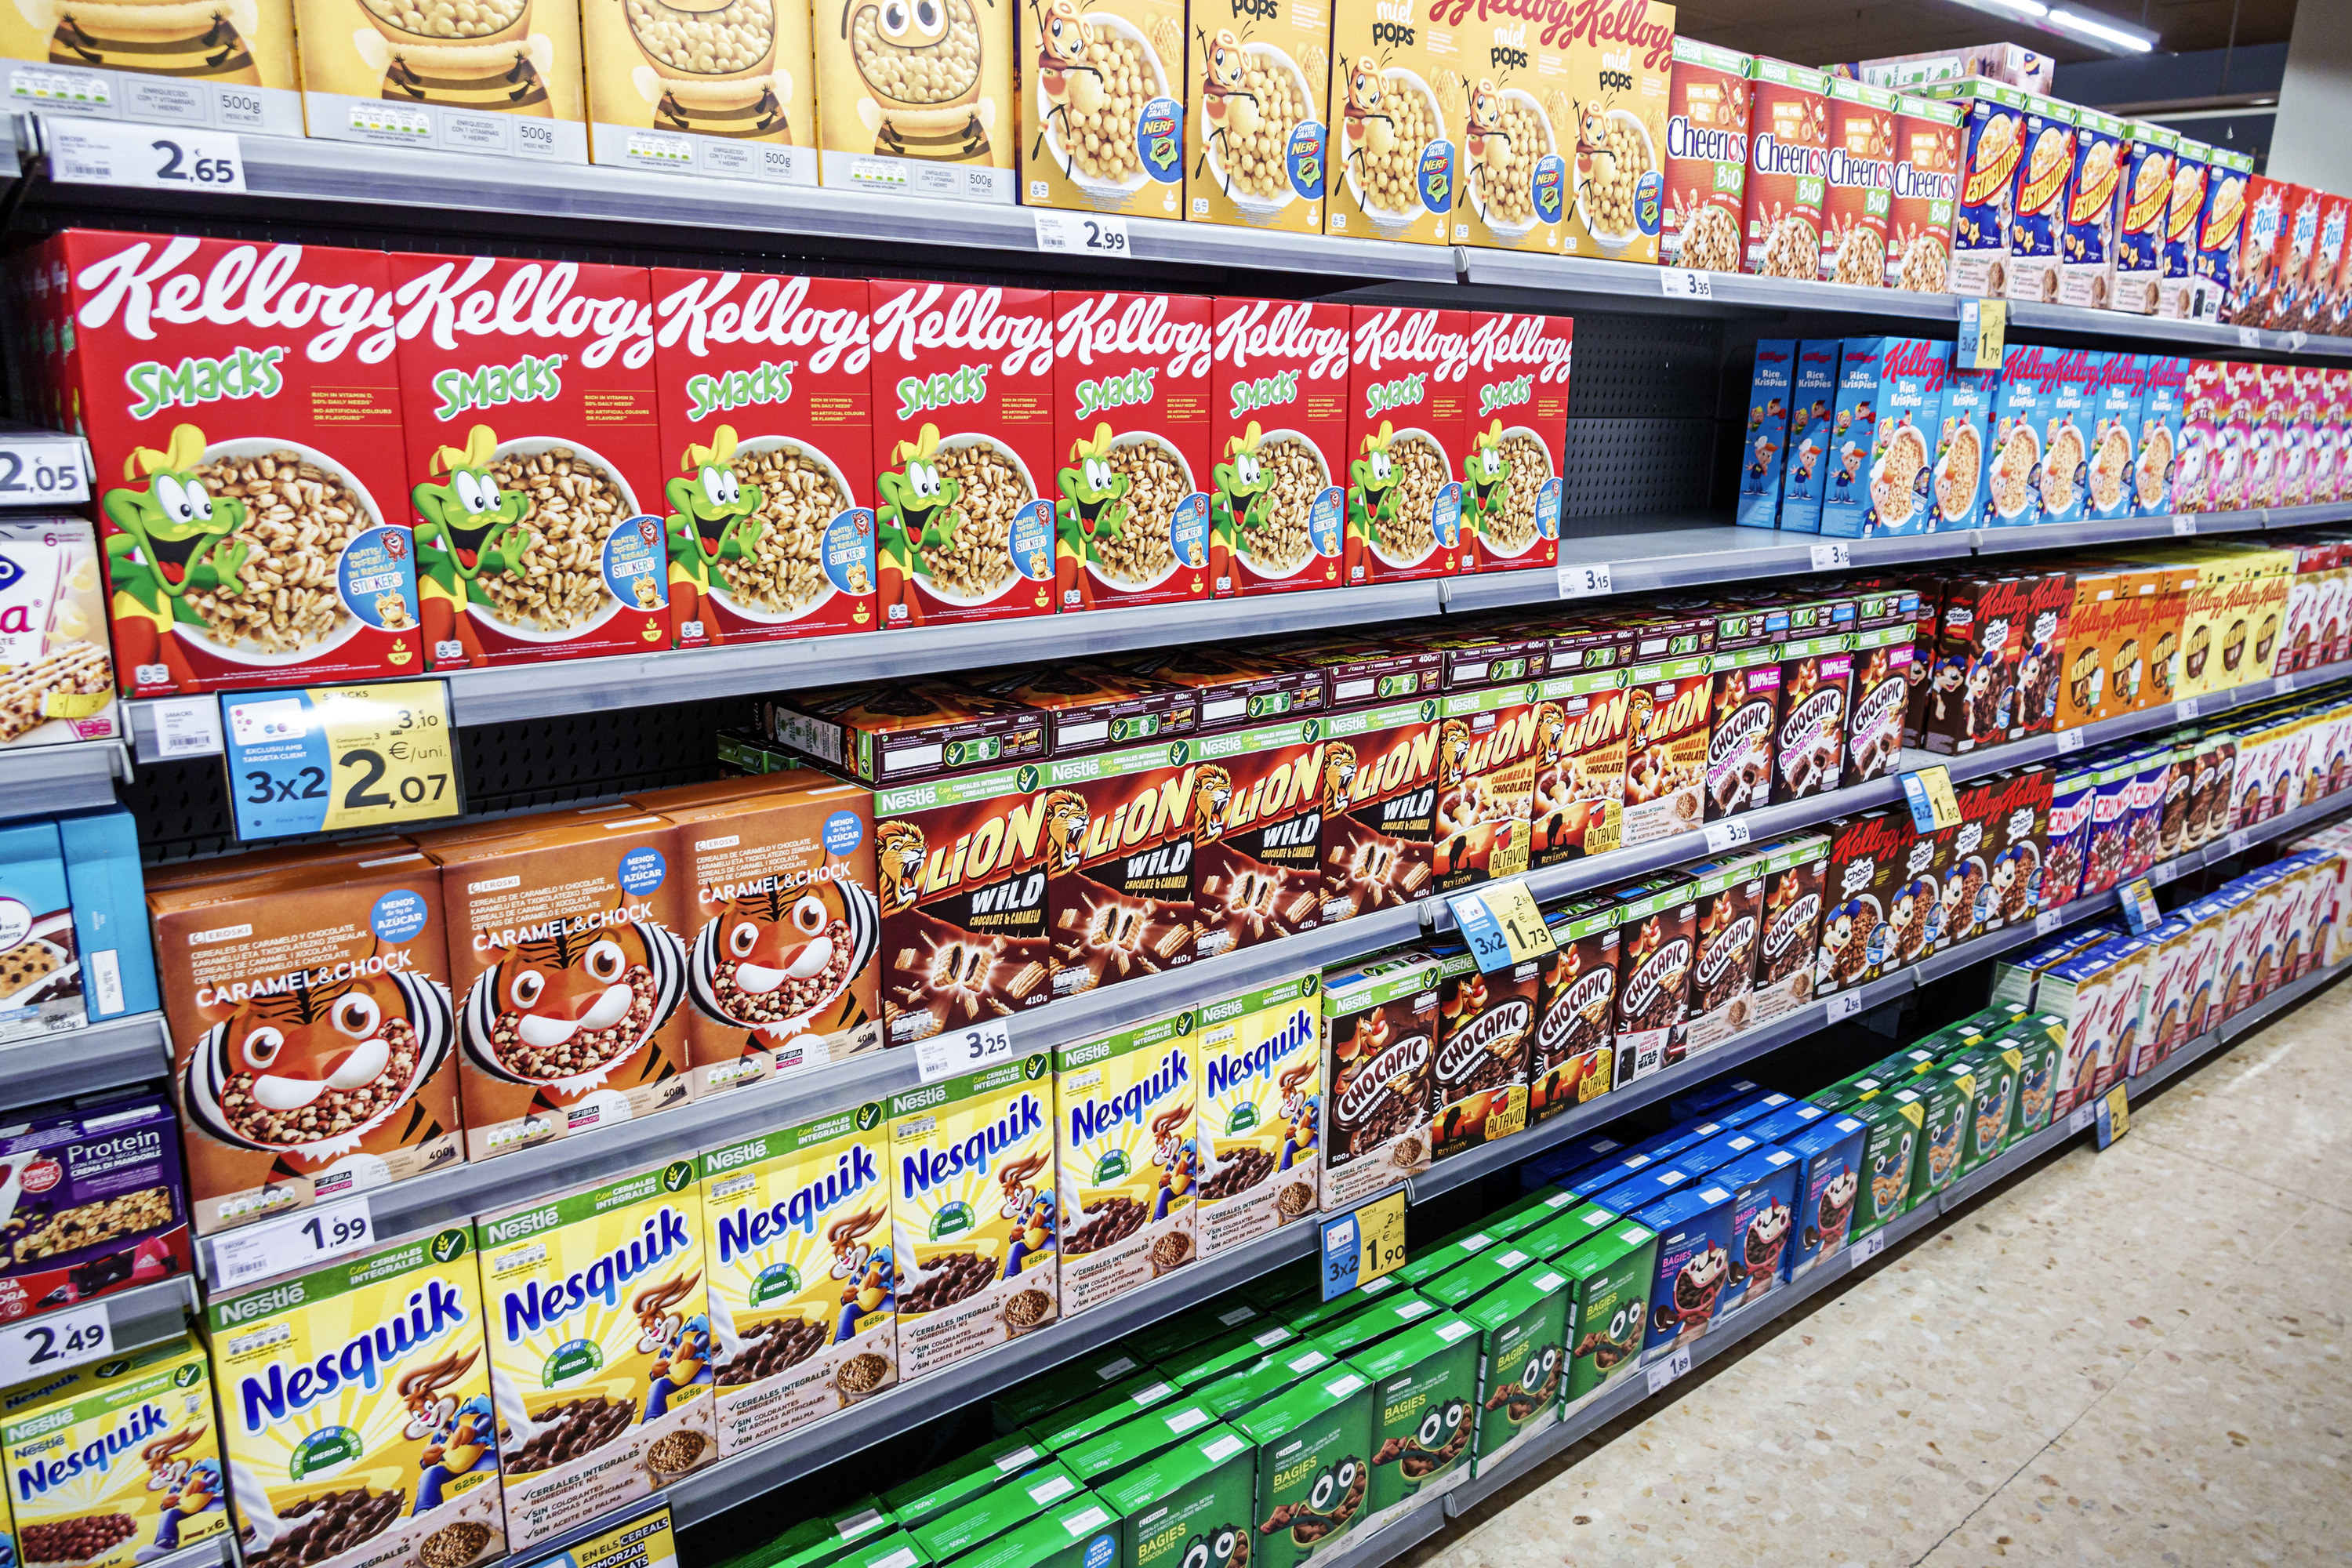 the cereal aisle